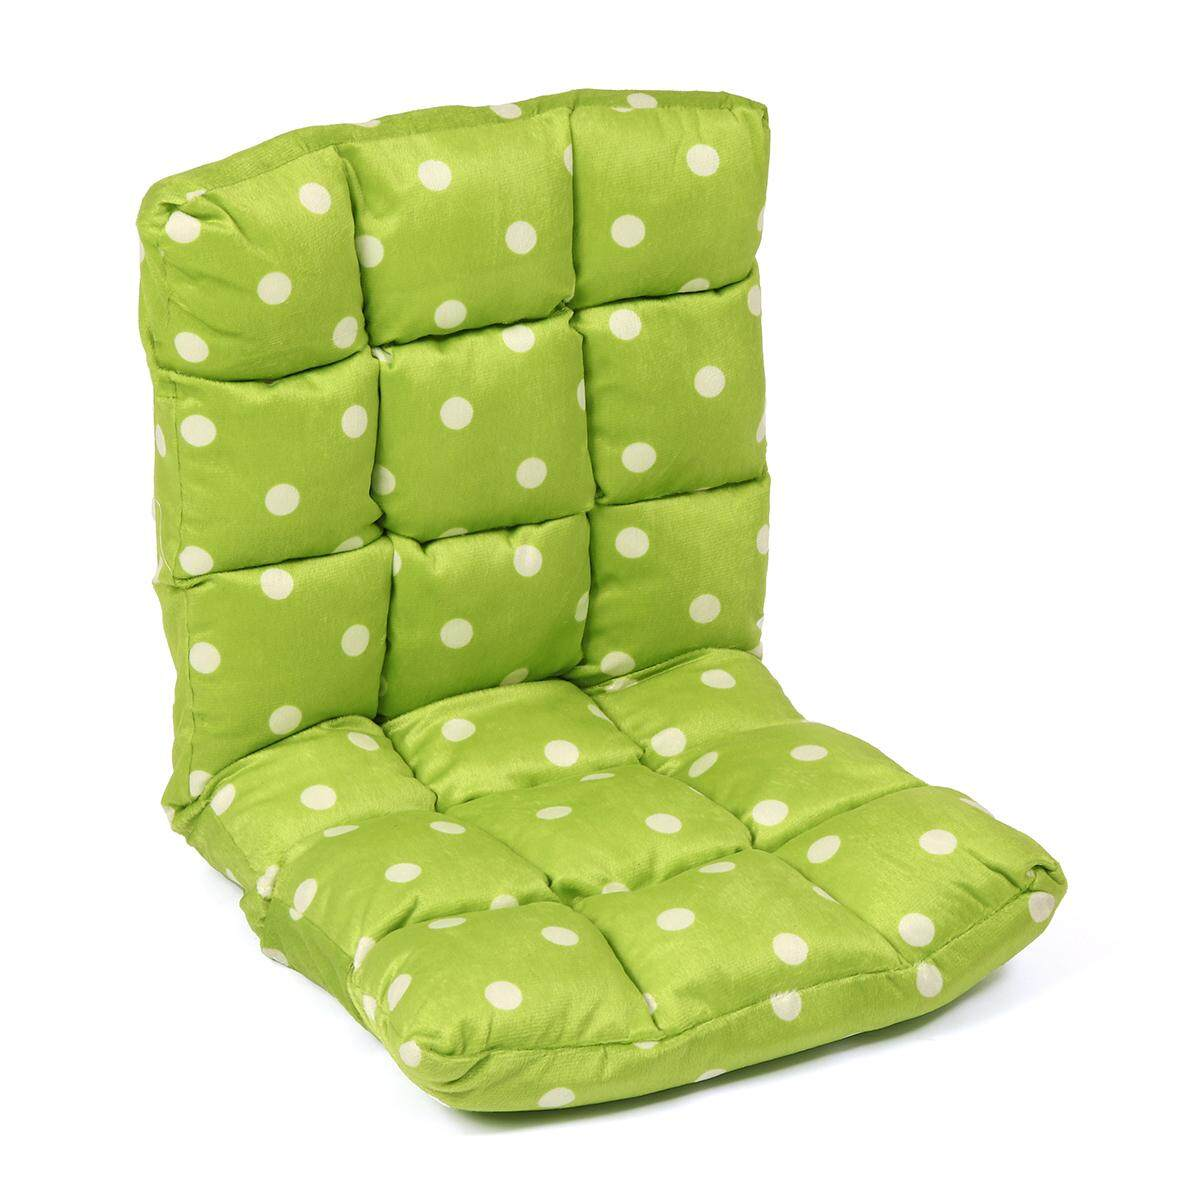 Lounge Sofa Floor Recliner Couch Folding Chair Cushion Fabric Portable